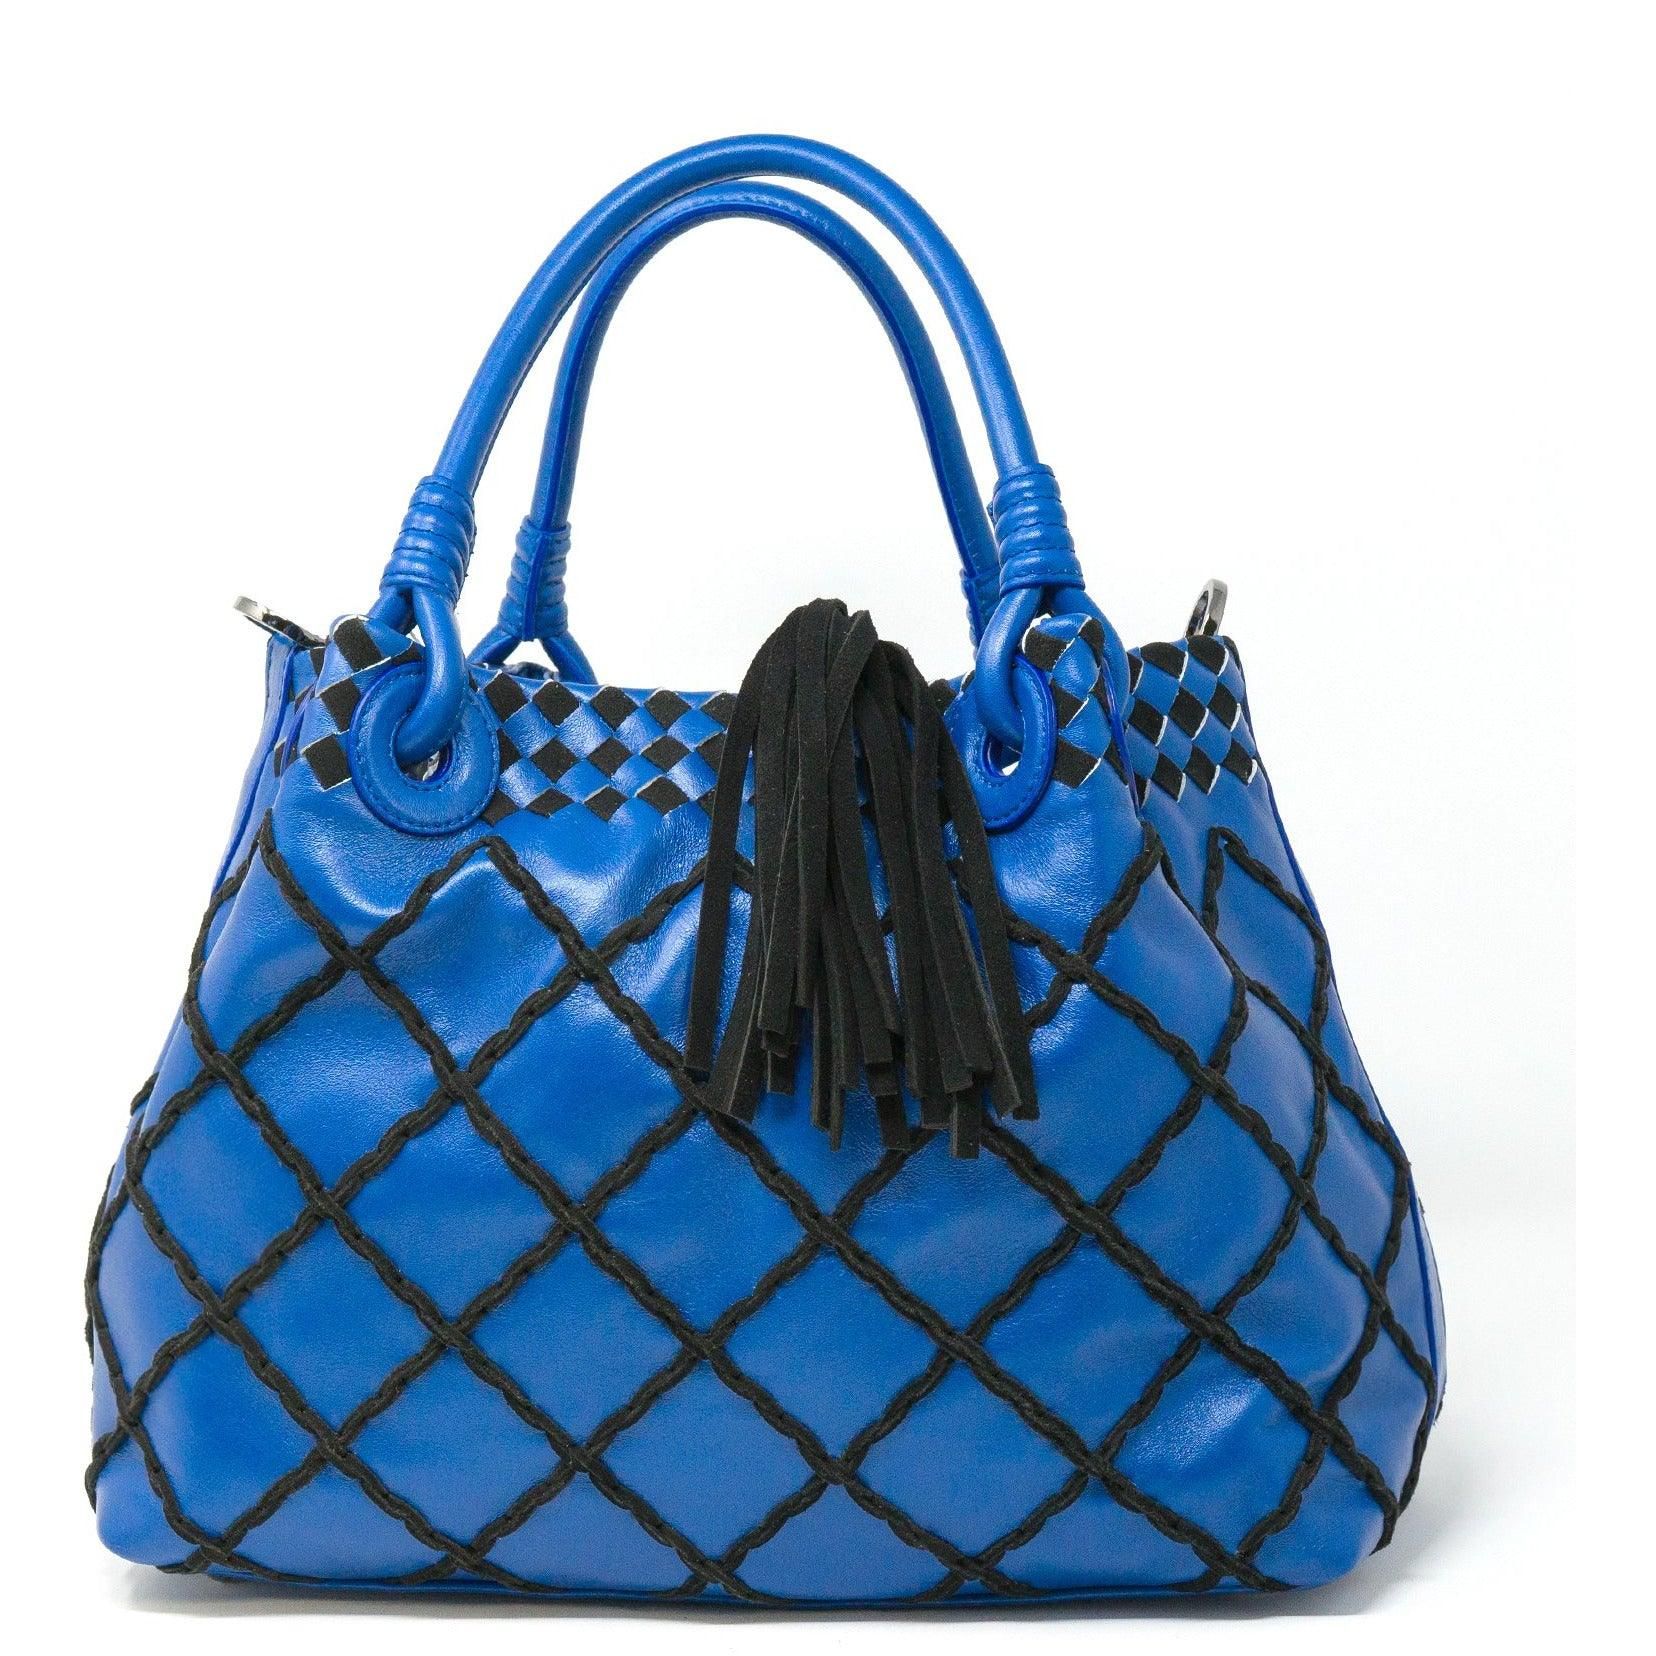 Women Leather Top Handle Bag in Blue